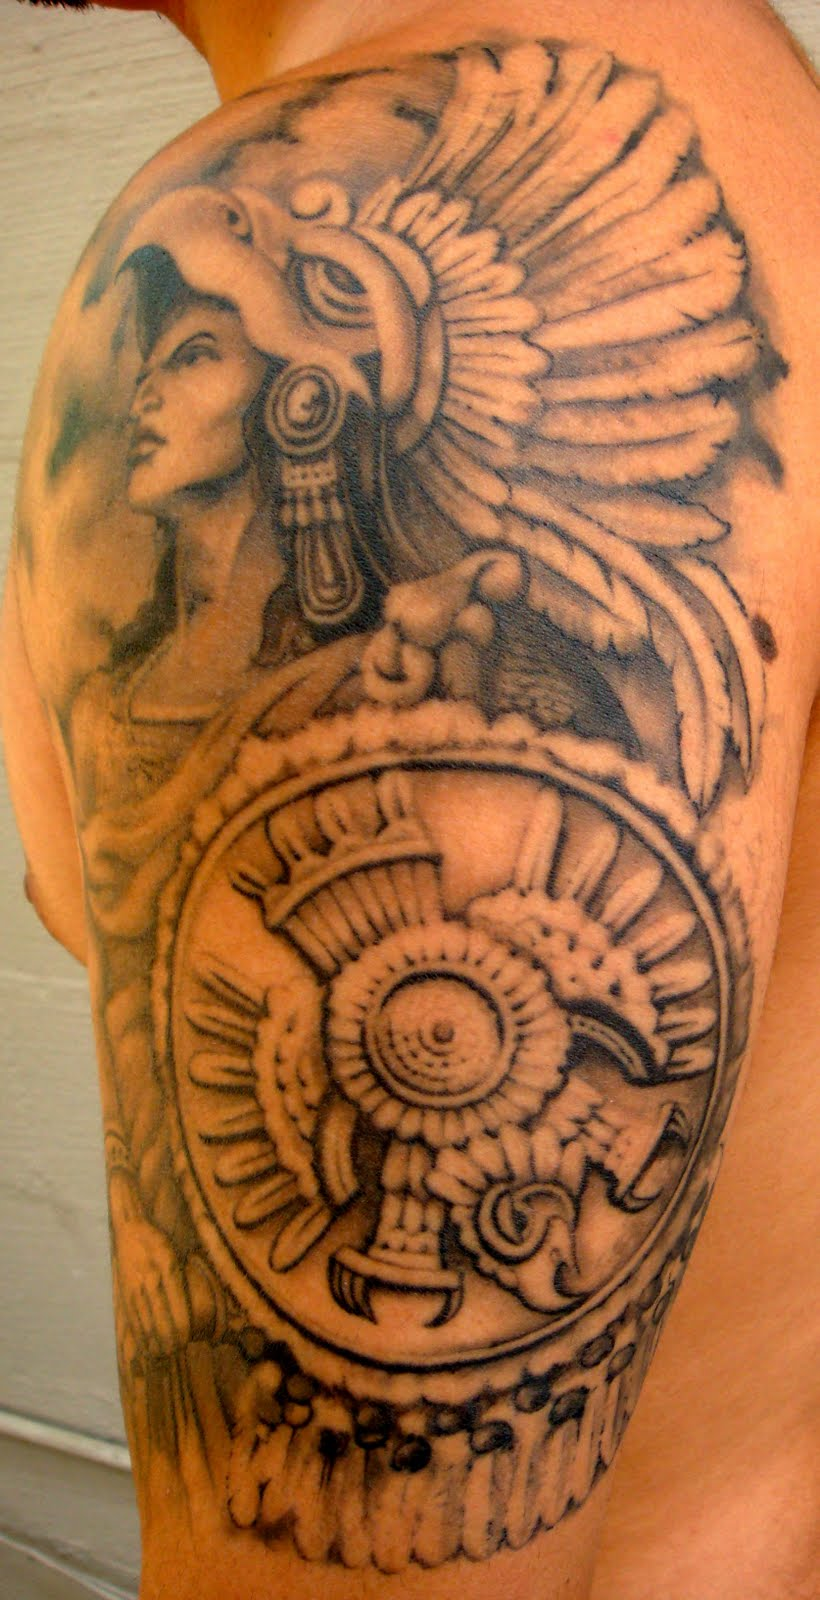 BlindSide Tattoo Studio: The Aztec Warrior- Cuauhtemoc